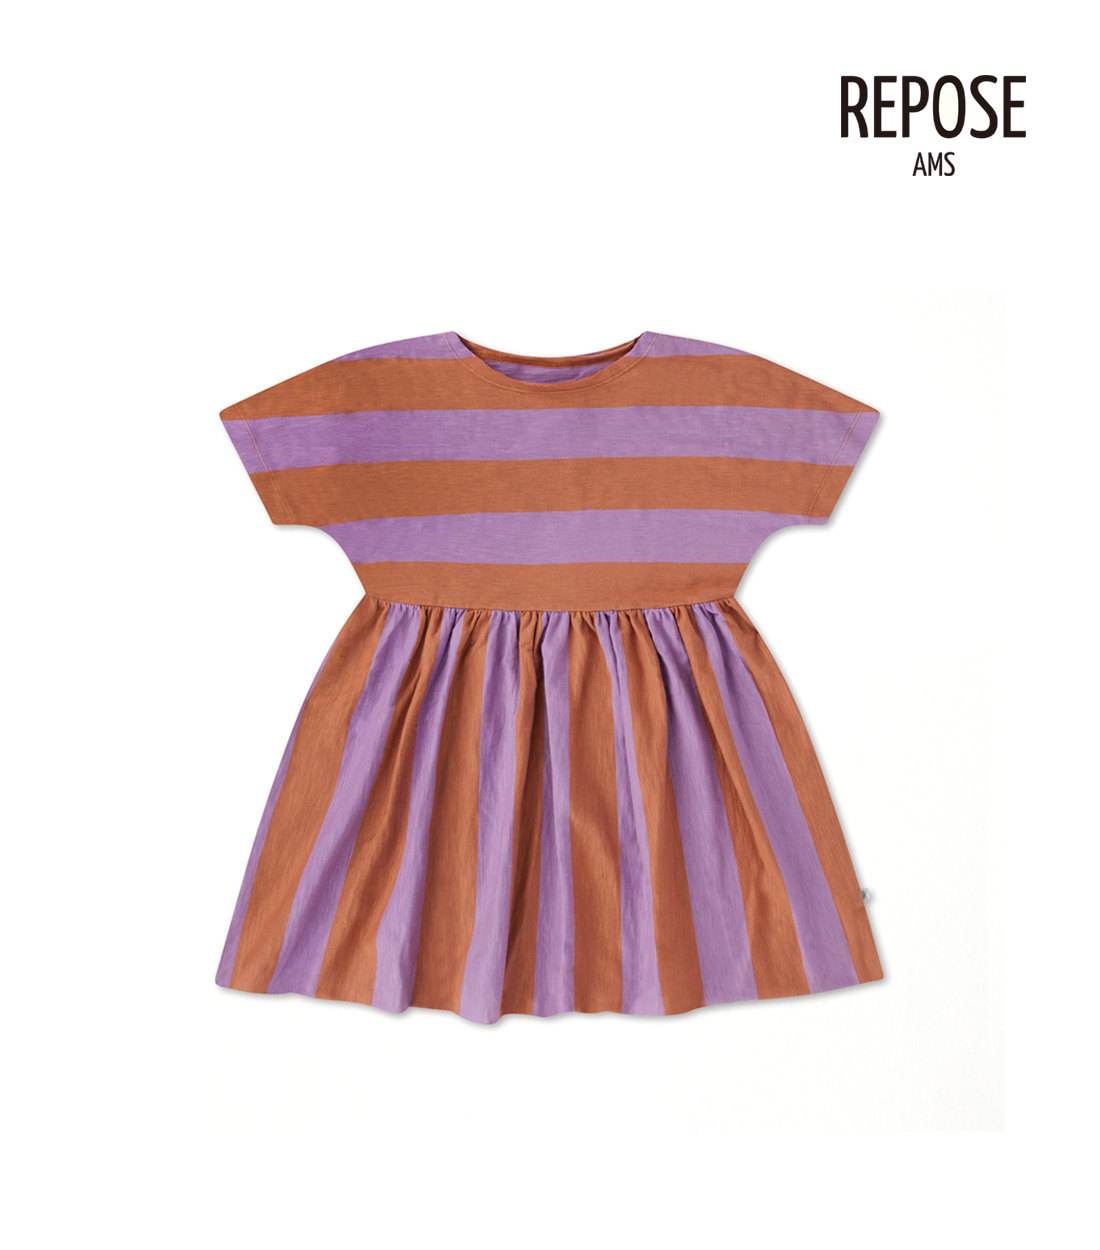 리포즈암스 RUFFLE DRESS / LILAC STRIPE